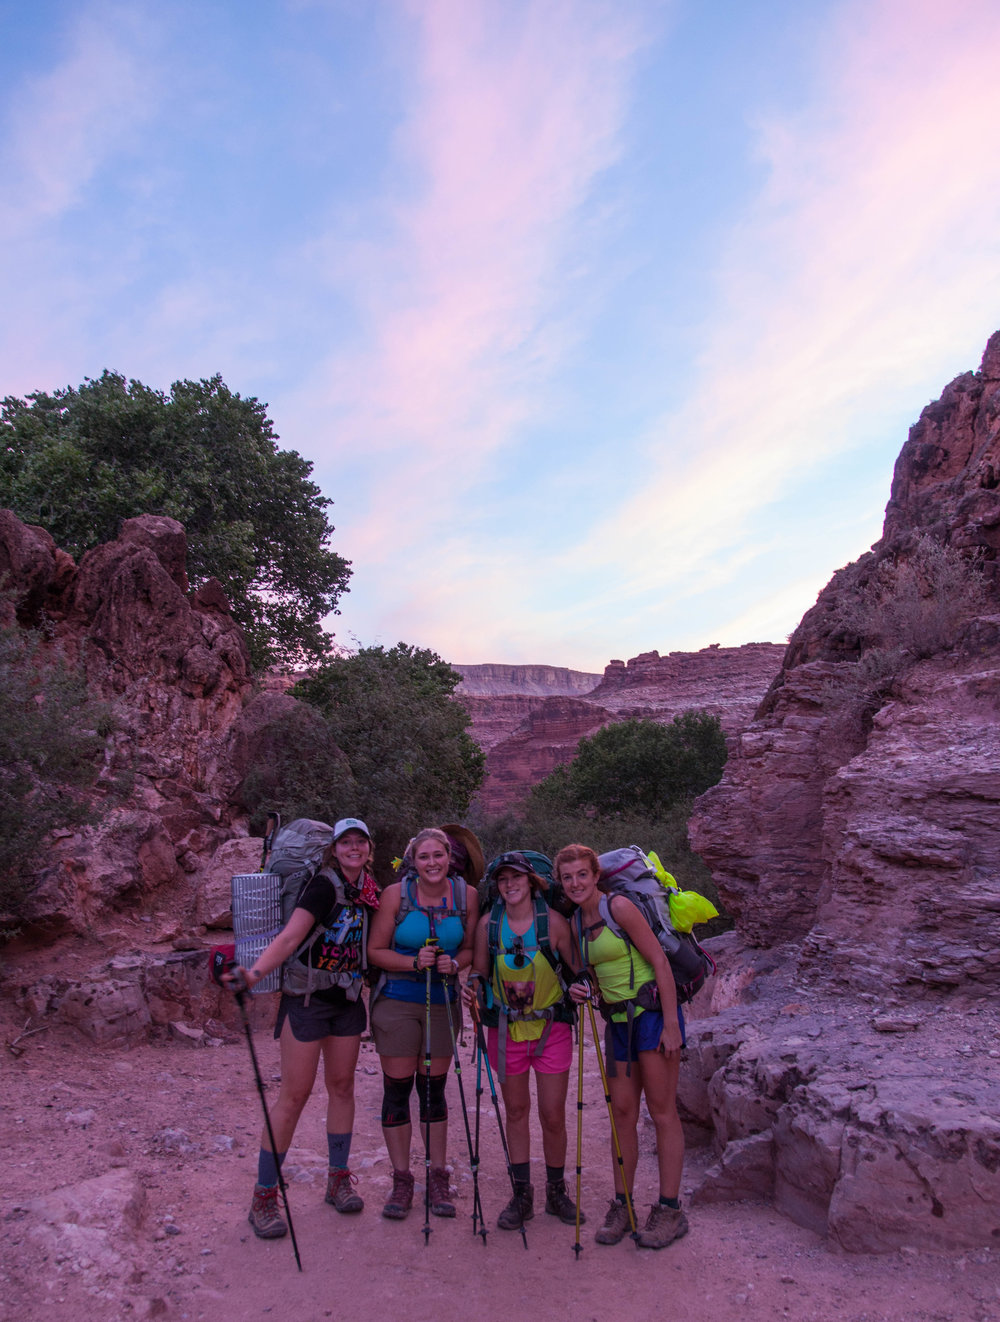 Right outside the village of Supai on our hike out.